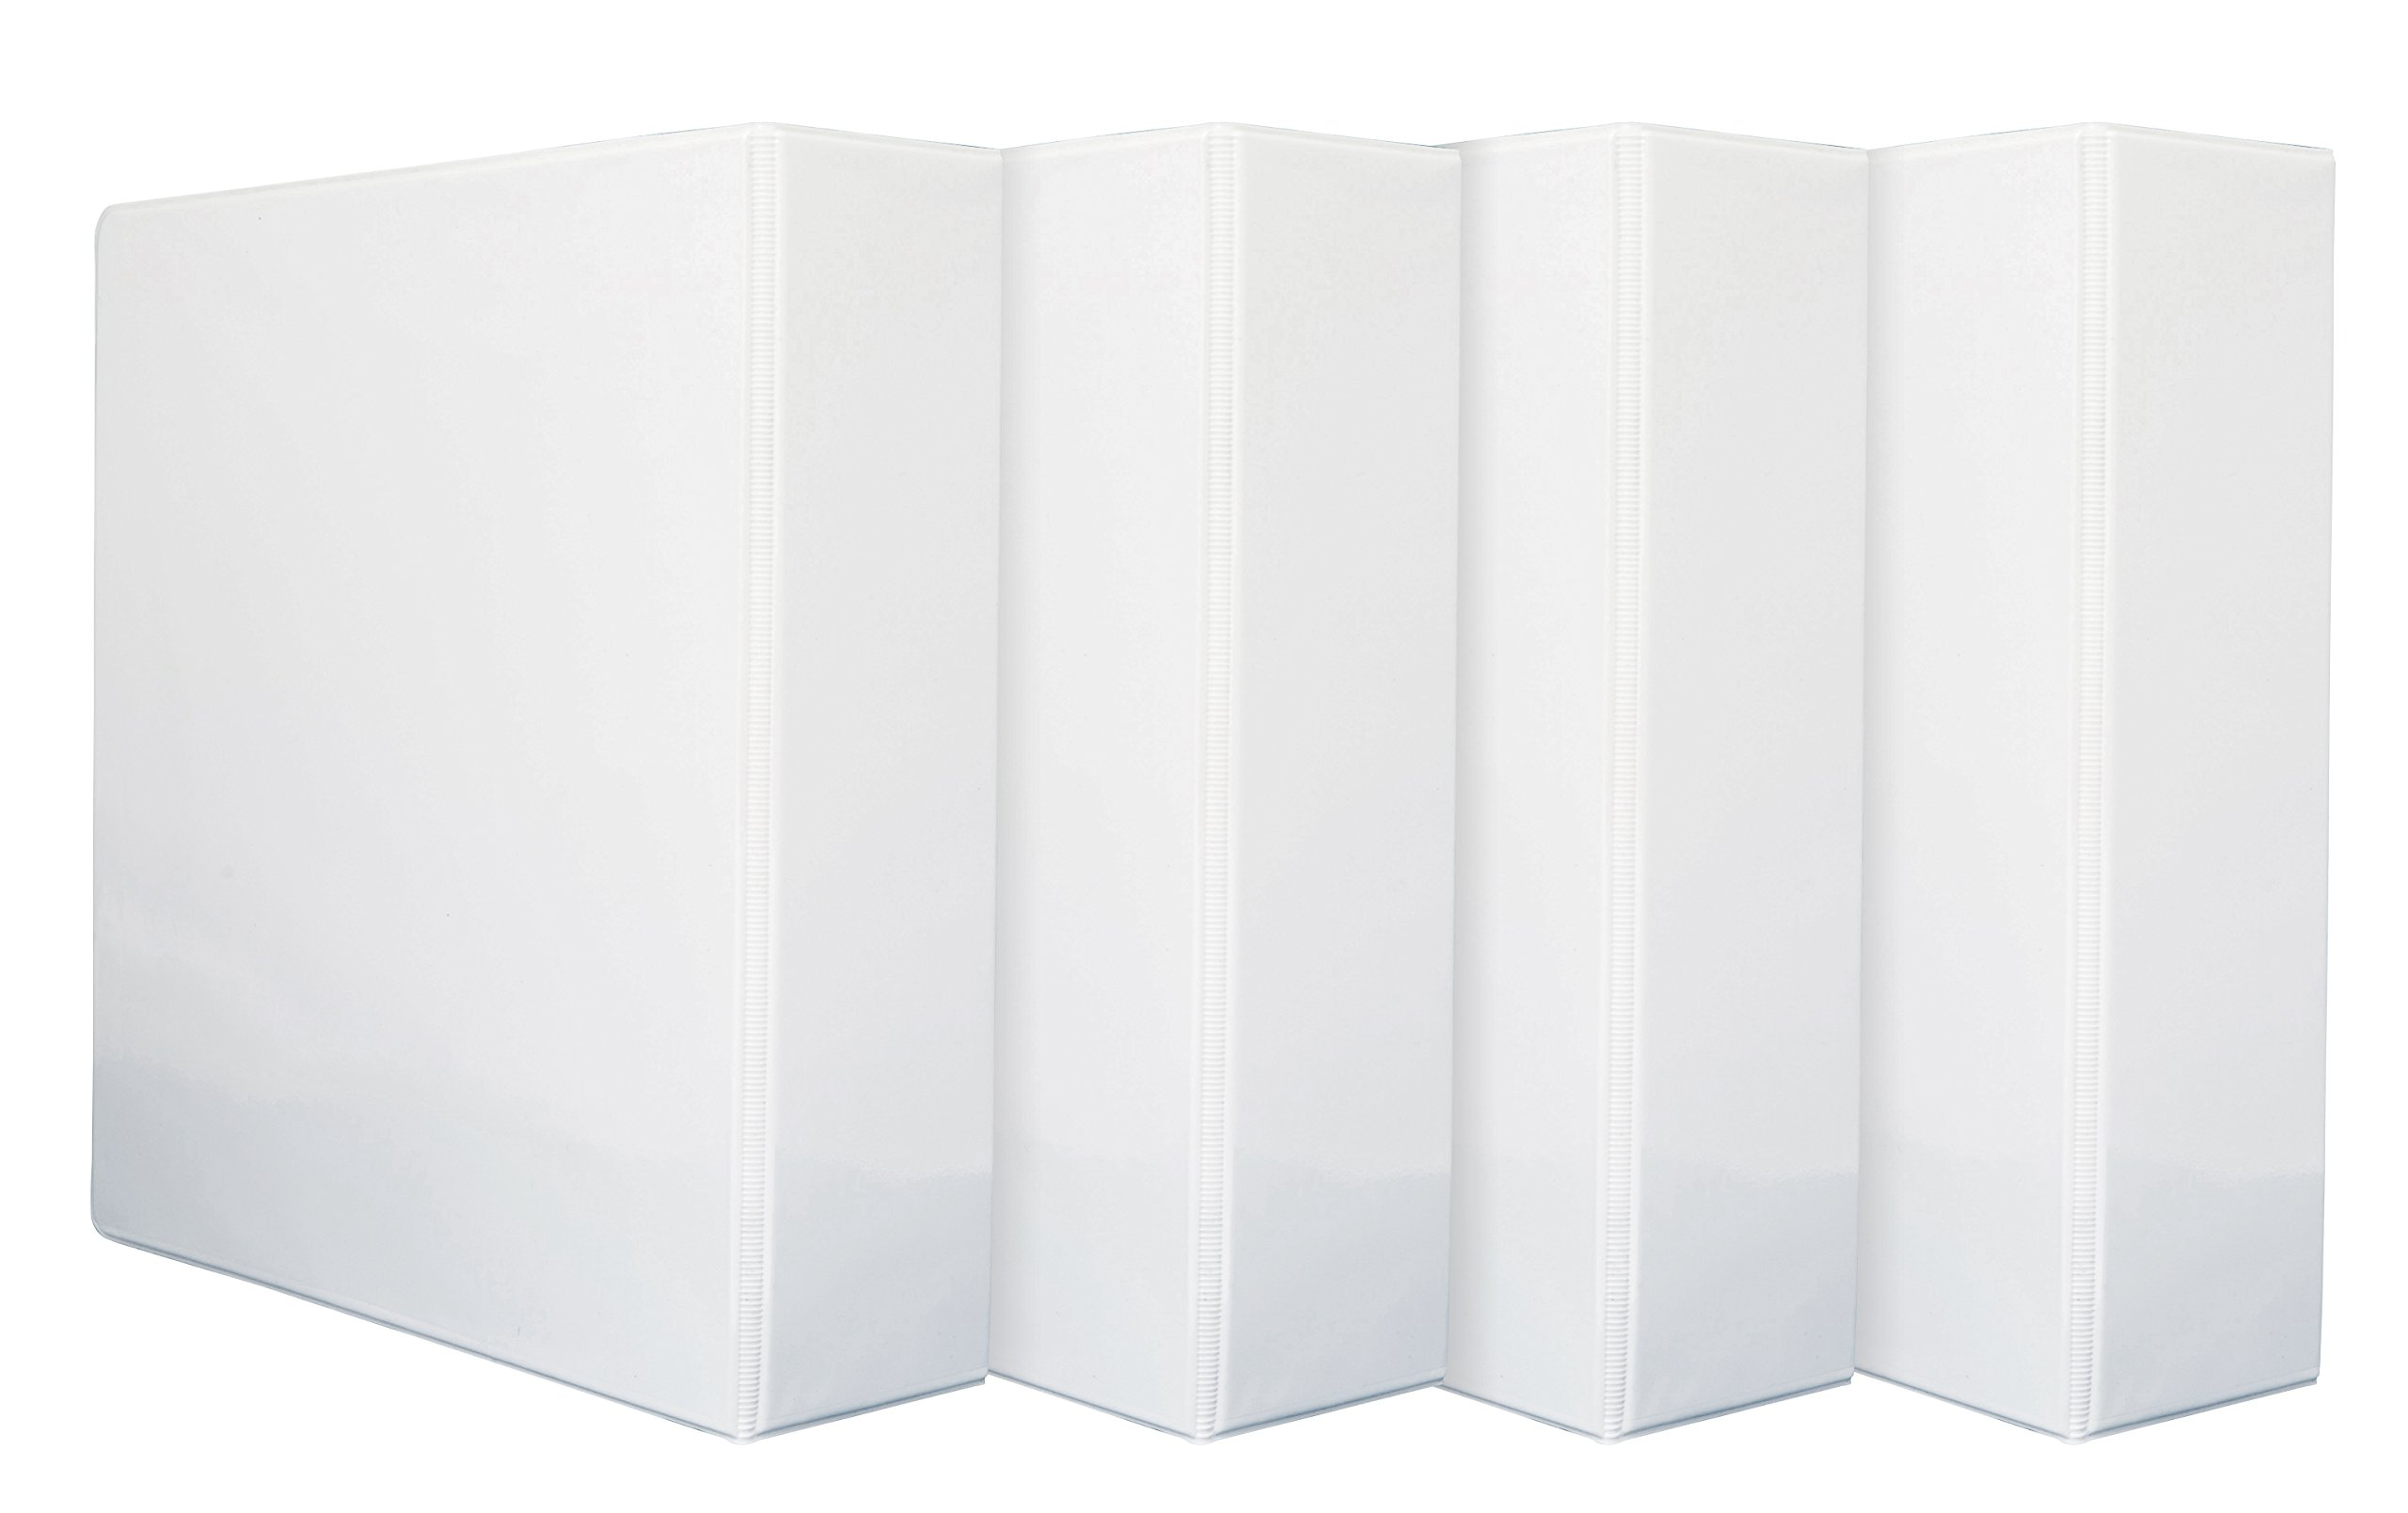 4 Pack 3'' 3-Ring Binders, Rugged Design for home, office, and school, holds up to 625 sheets of 8.5'' x 11'' paper, White, 4 Binders